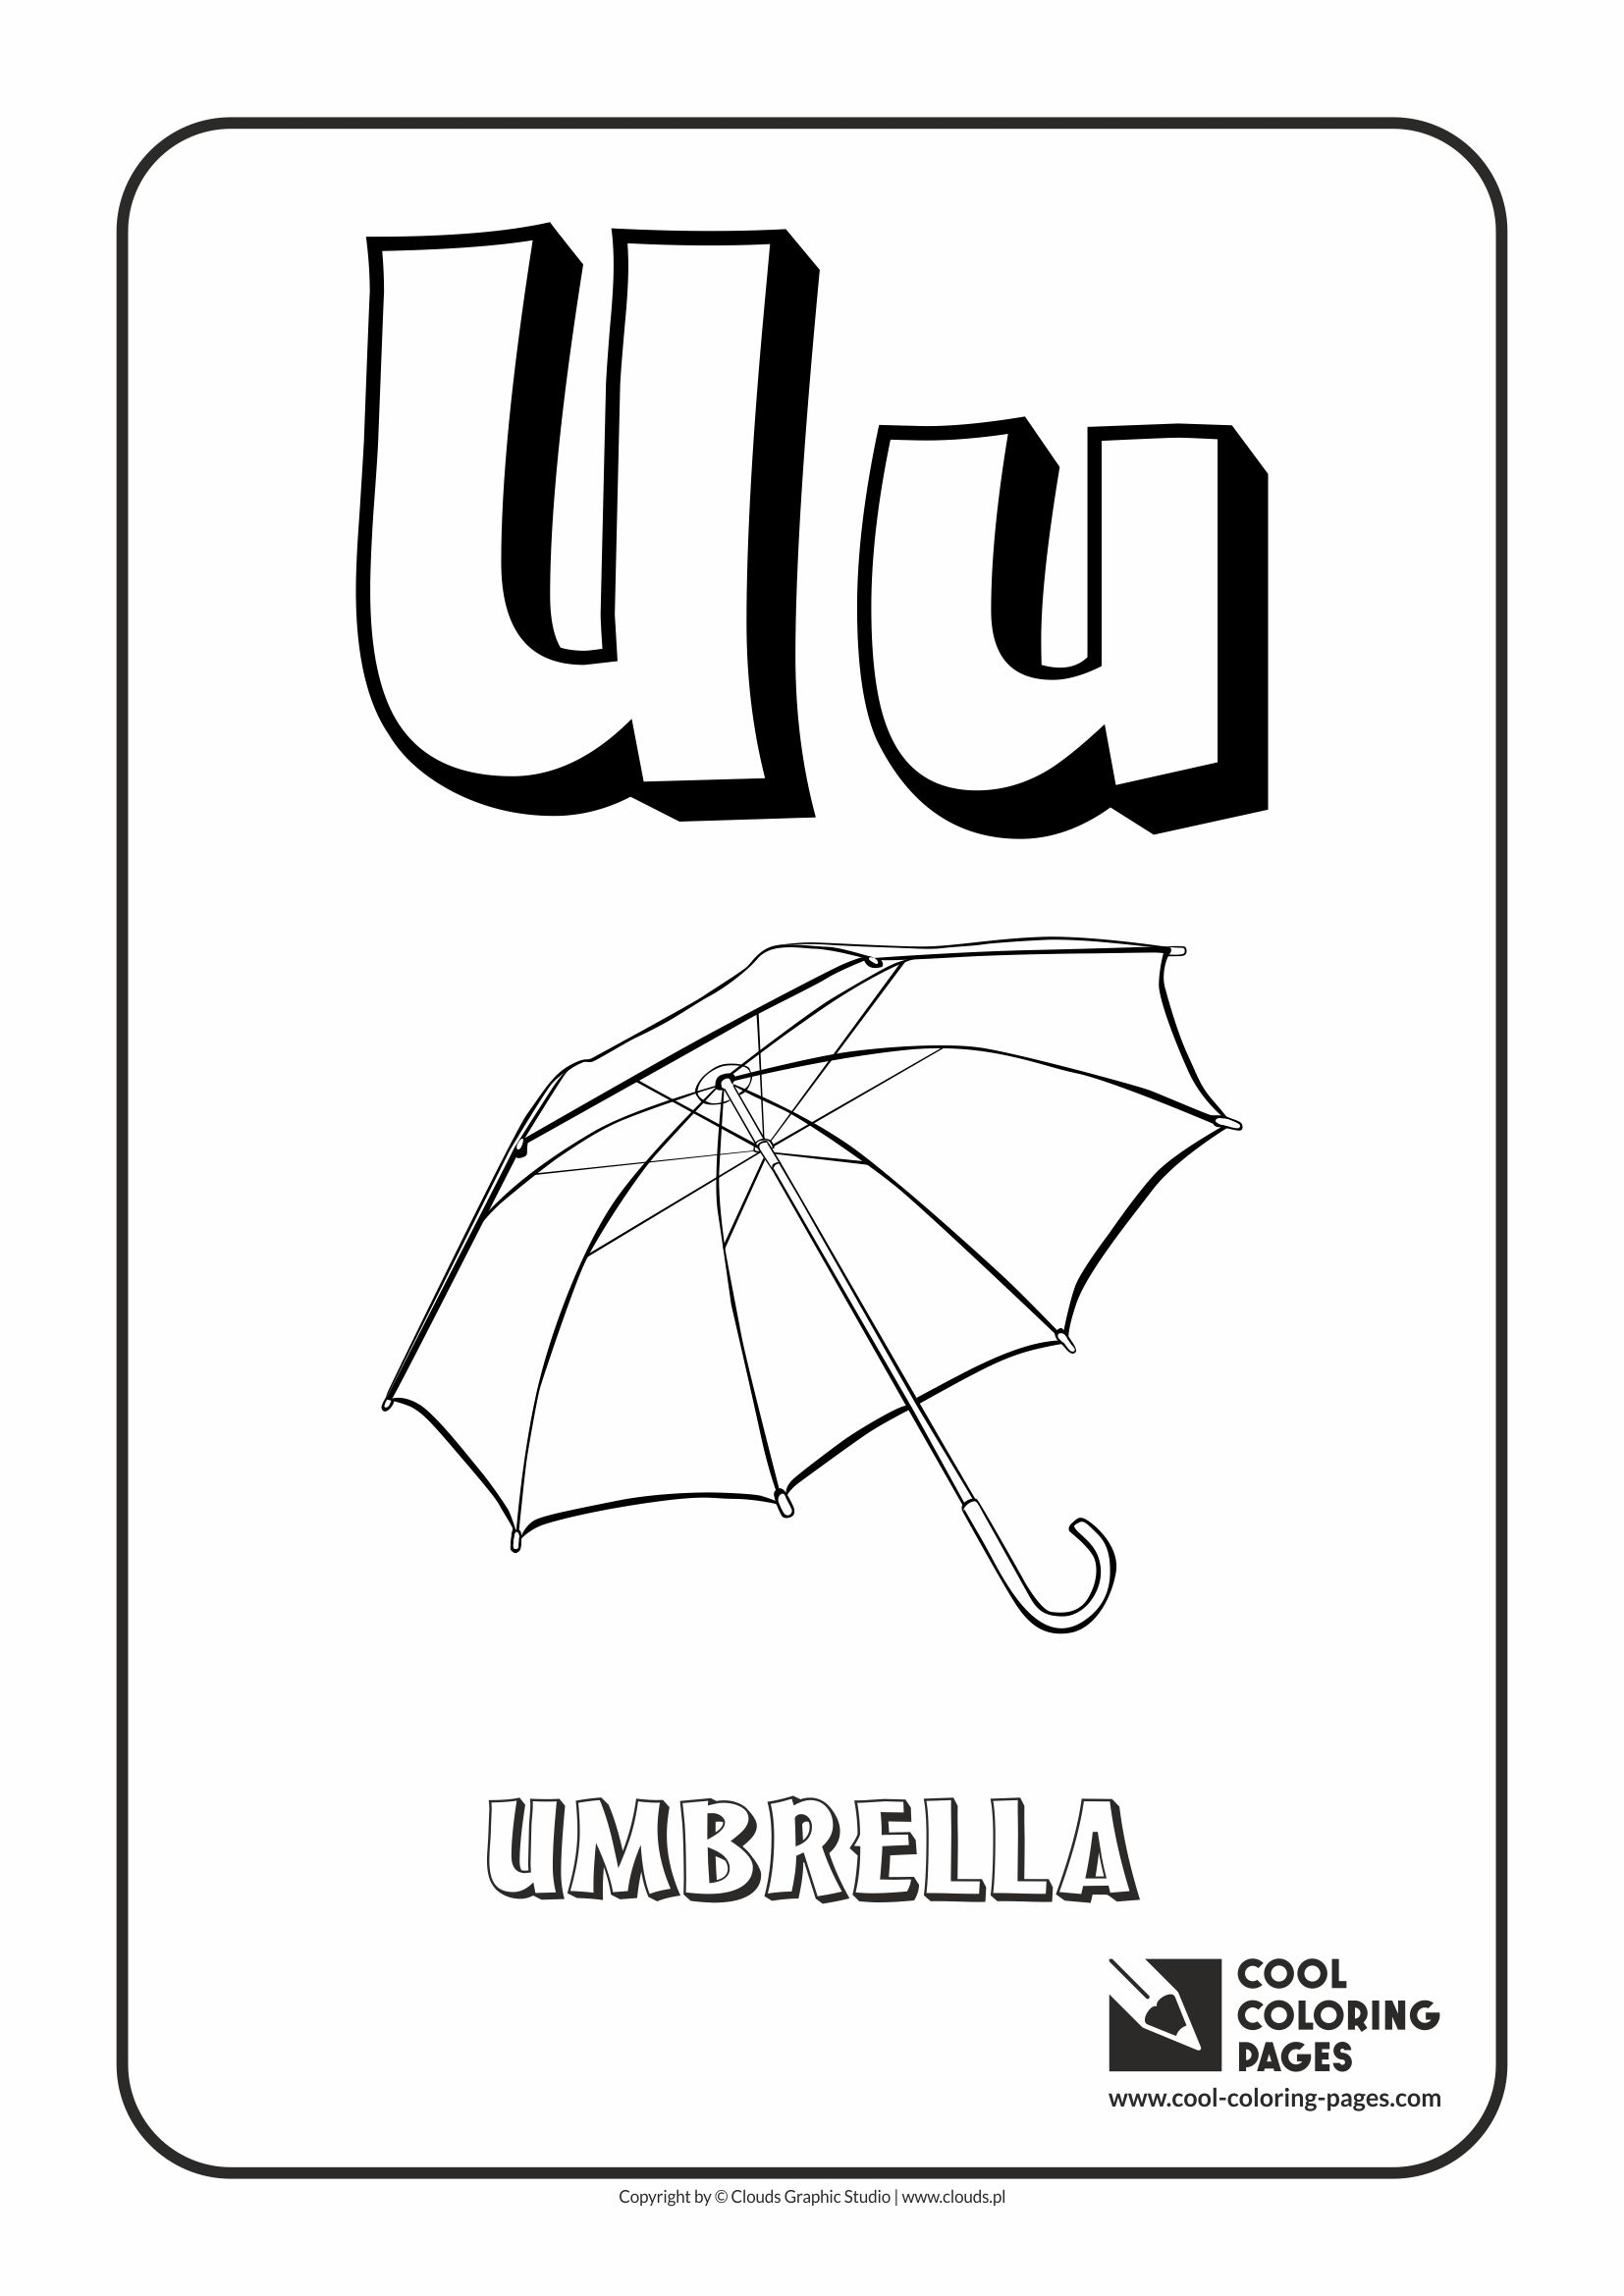 Short u coloring pages - Letter U Coloring Pages Free Printable Coloring Pages Free Coloring Page With Letter U Download